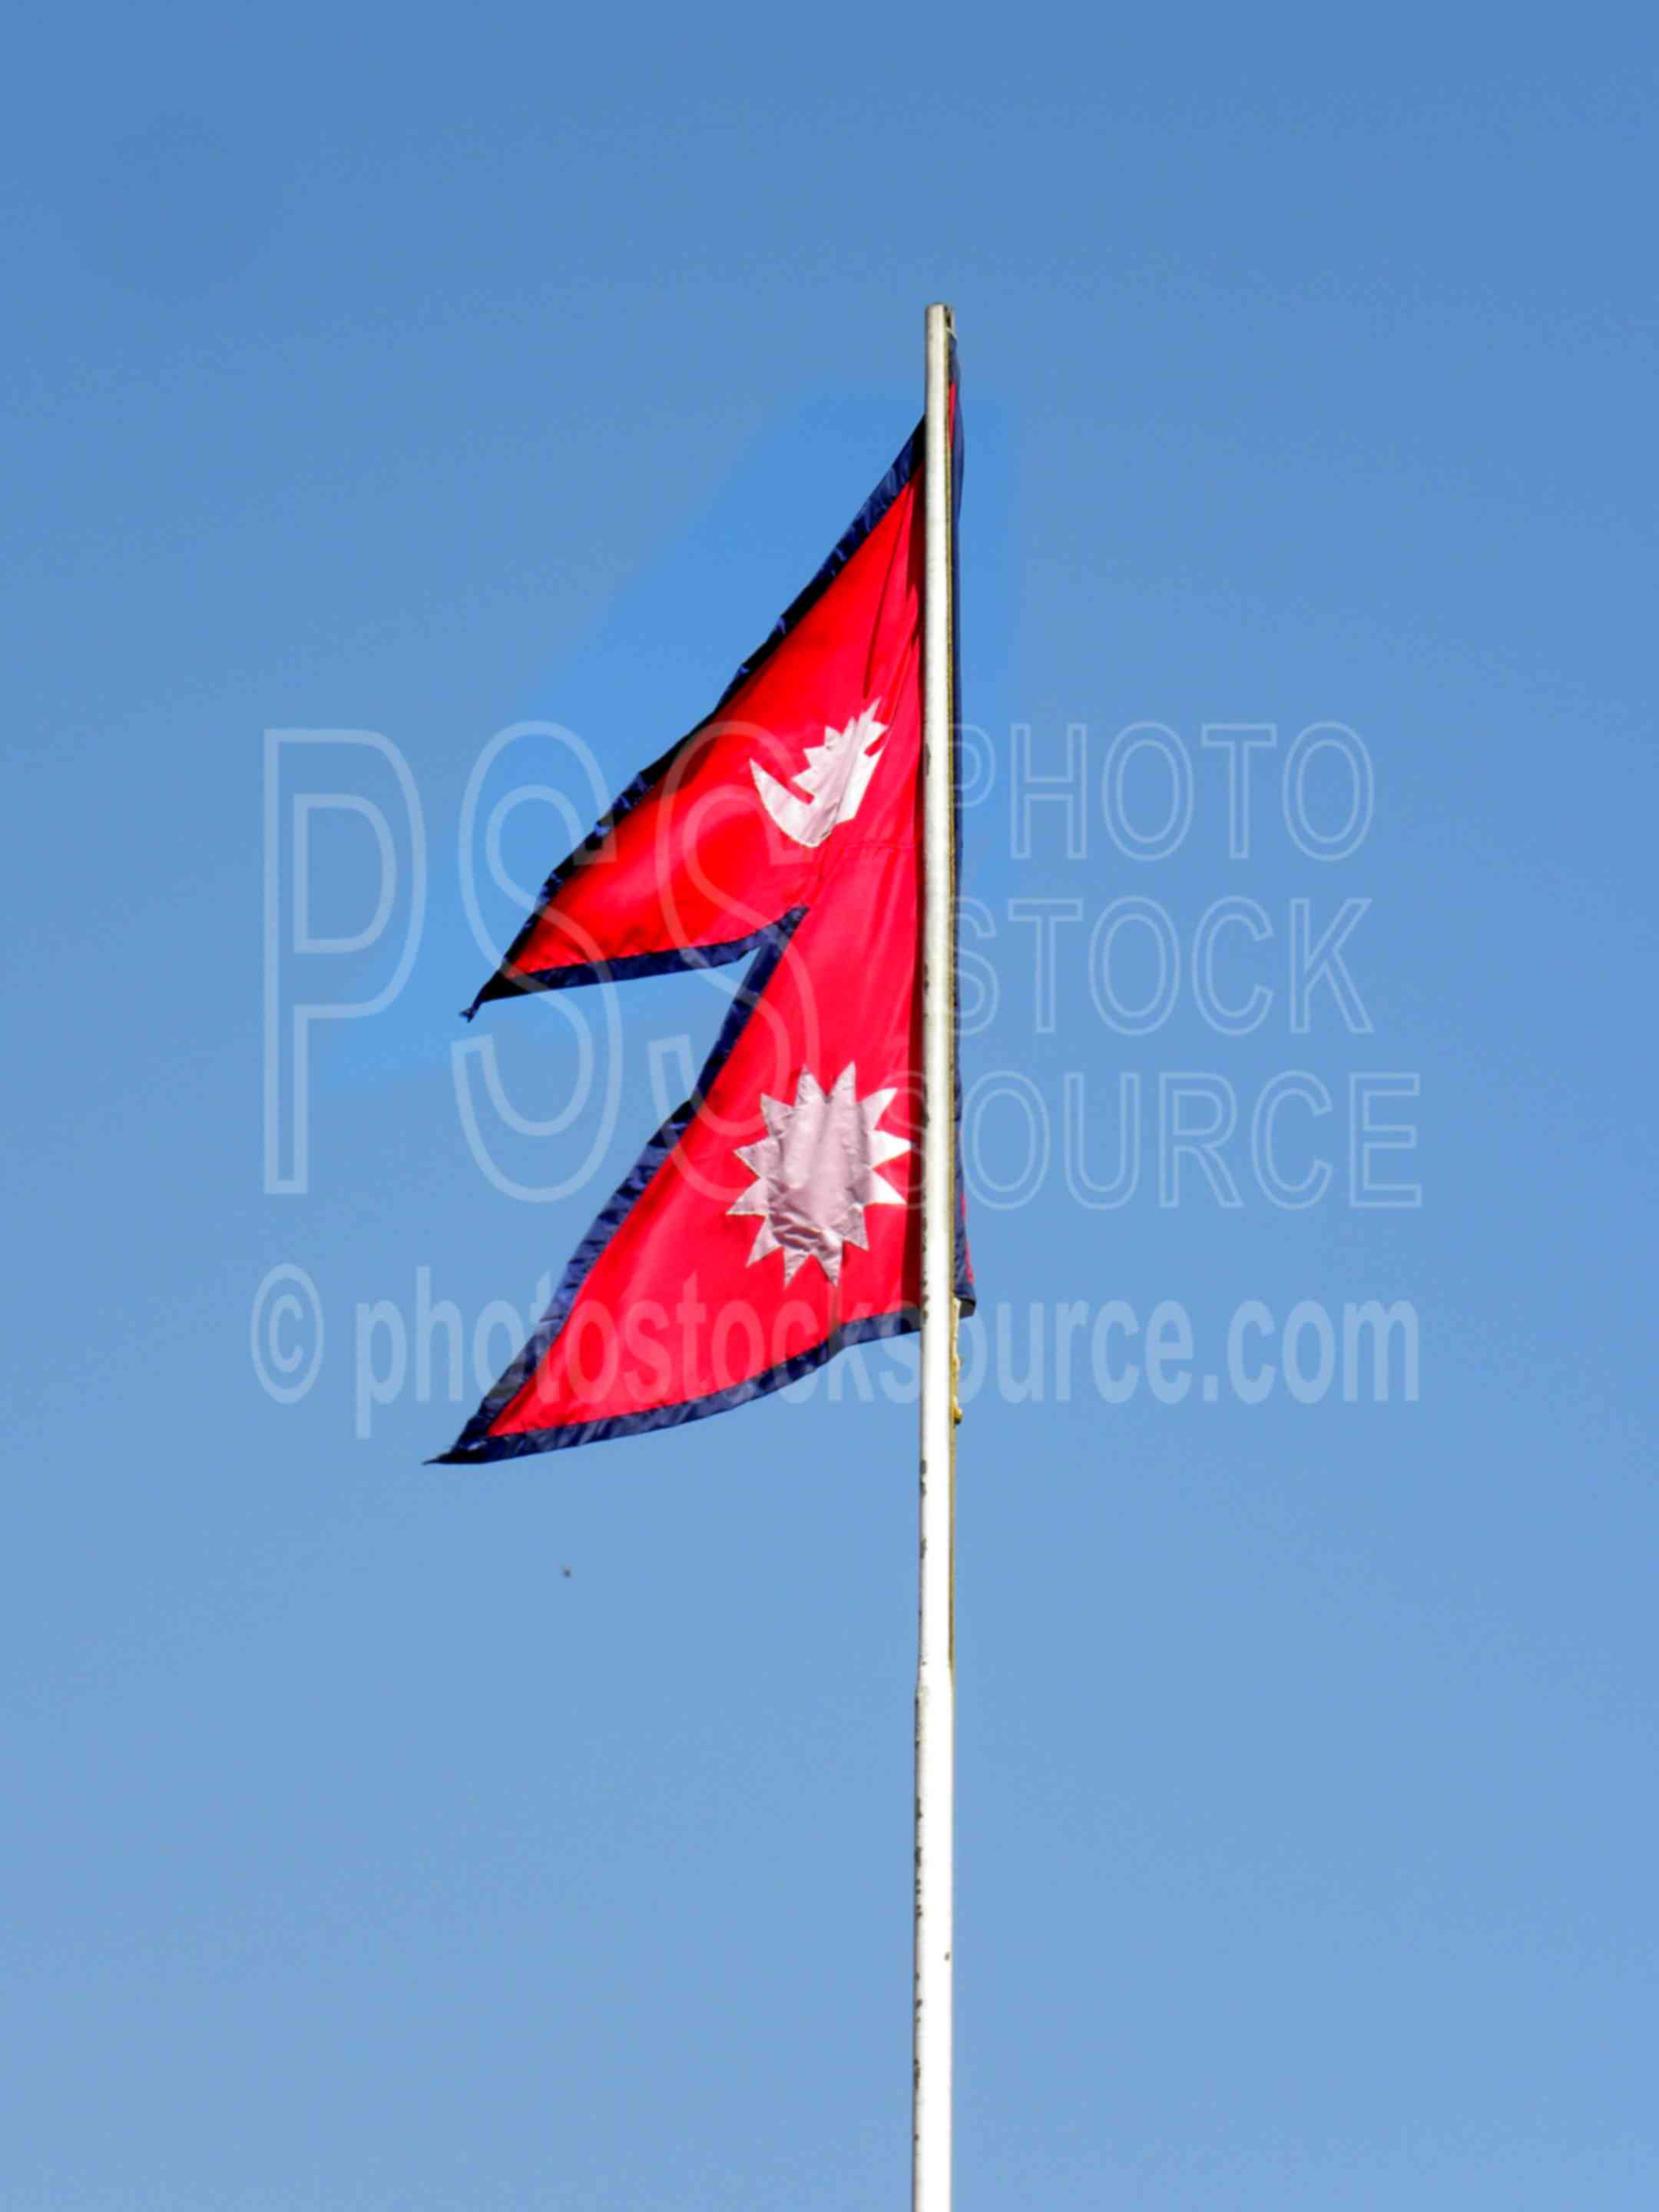 Photo of Nepalese Flag by Photo Stock Source flag